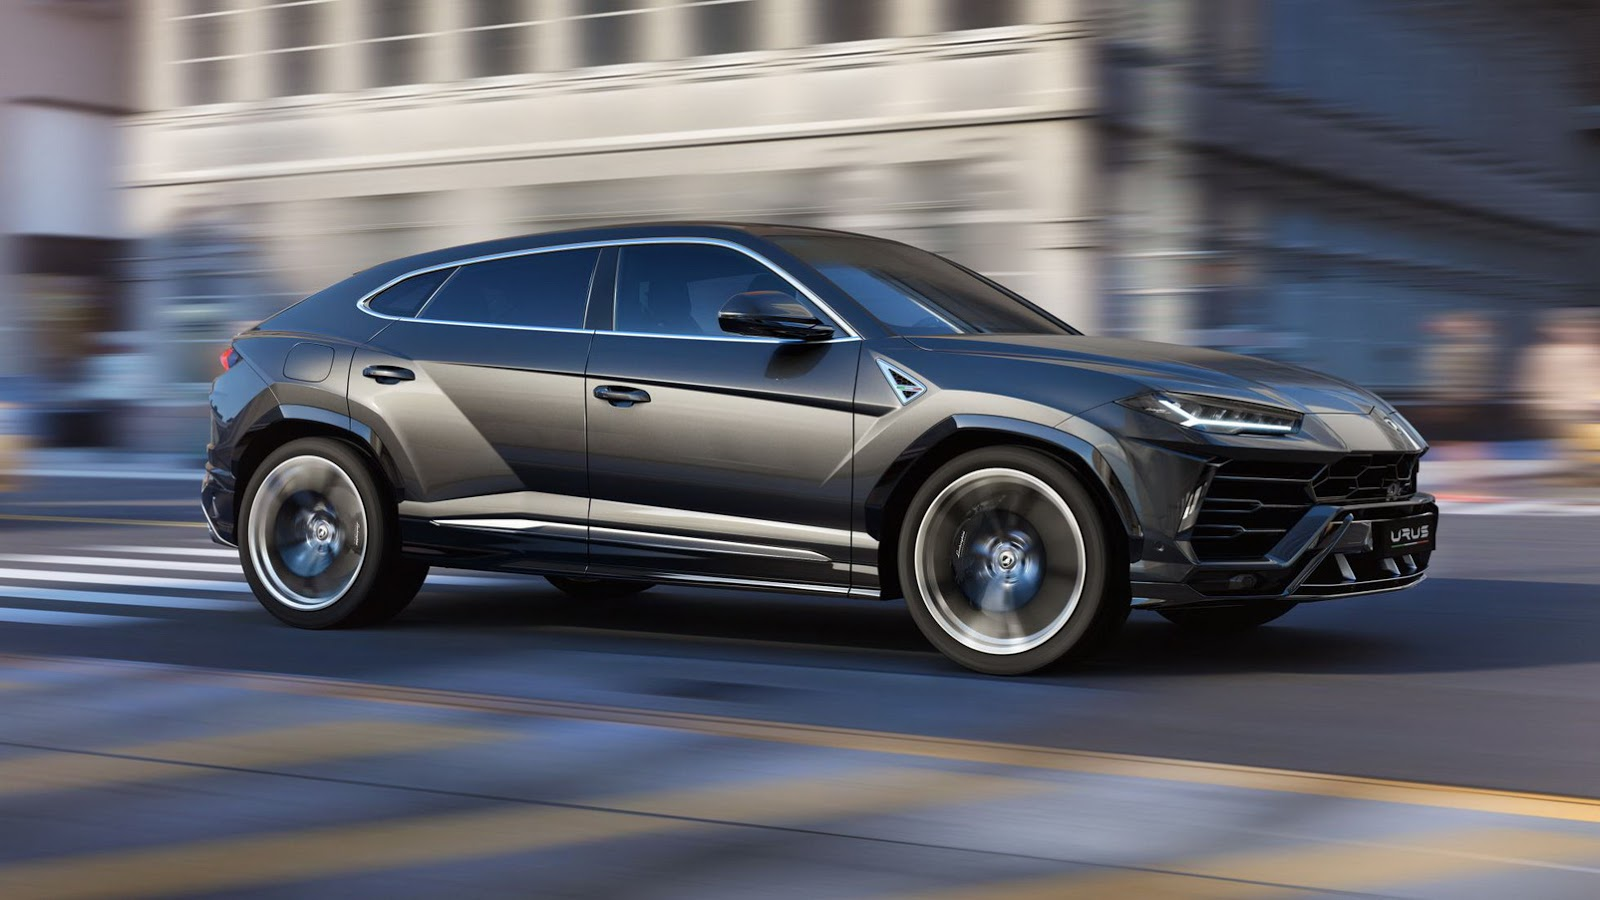 Lamborghini Unveiled The Once Improbable Urus SUV As It Seeks To Expand Its  Factory To Meet Utility Vehicle Demand.